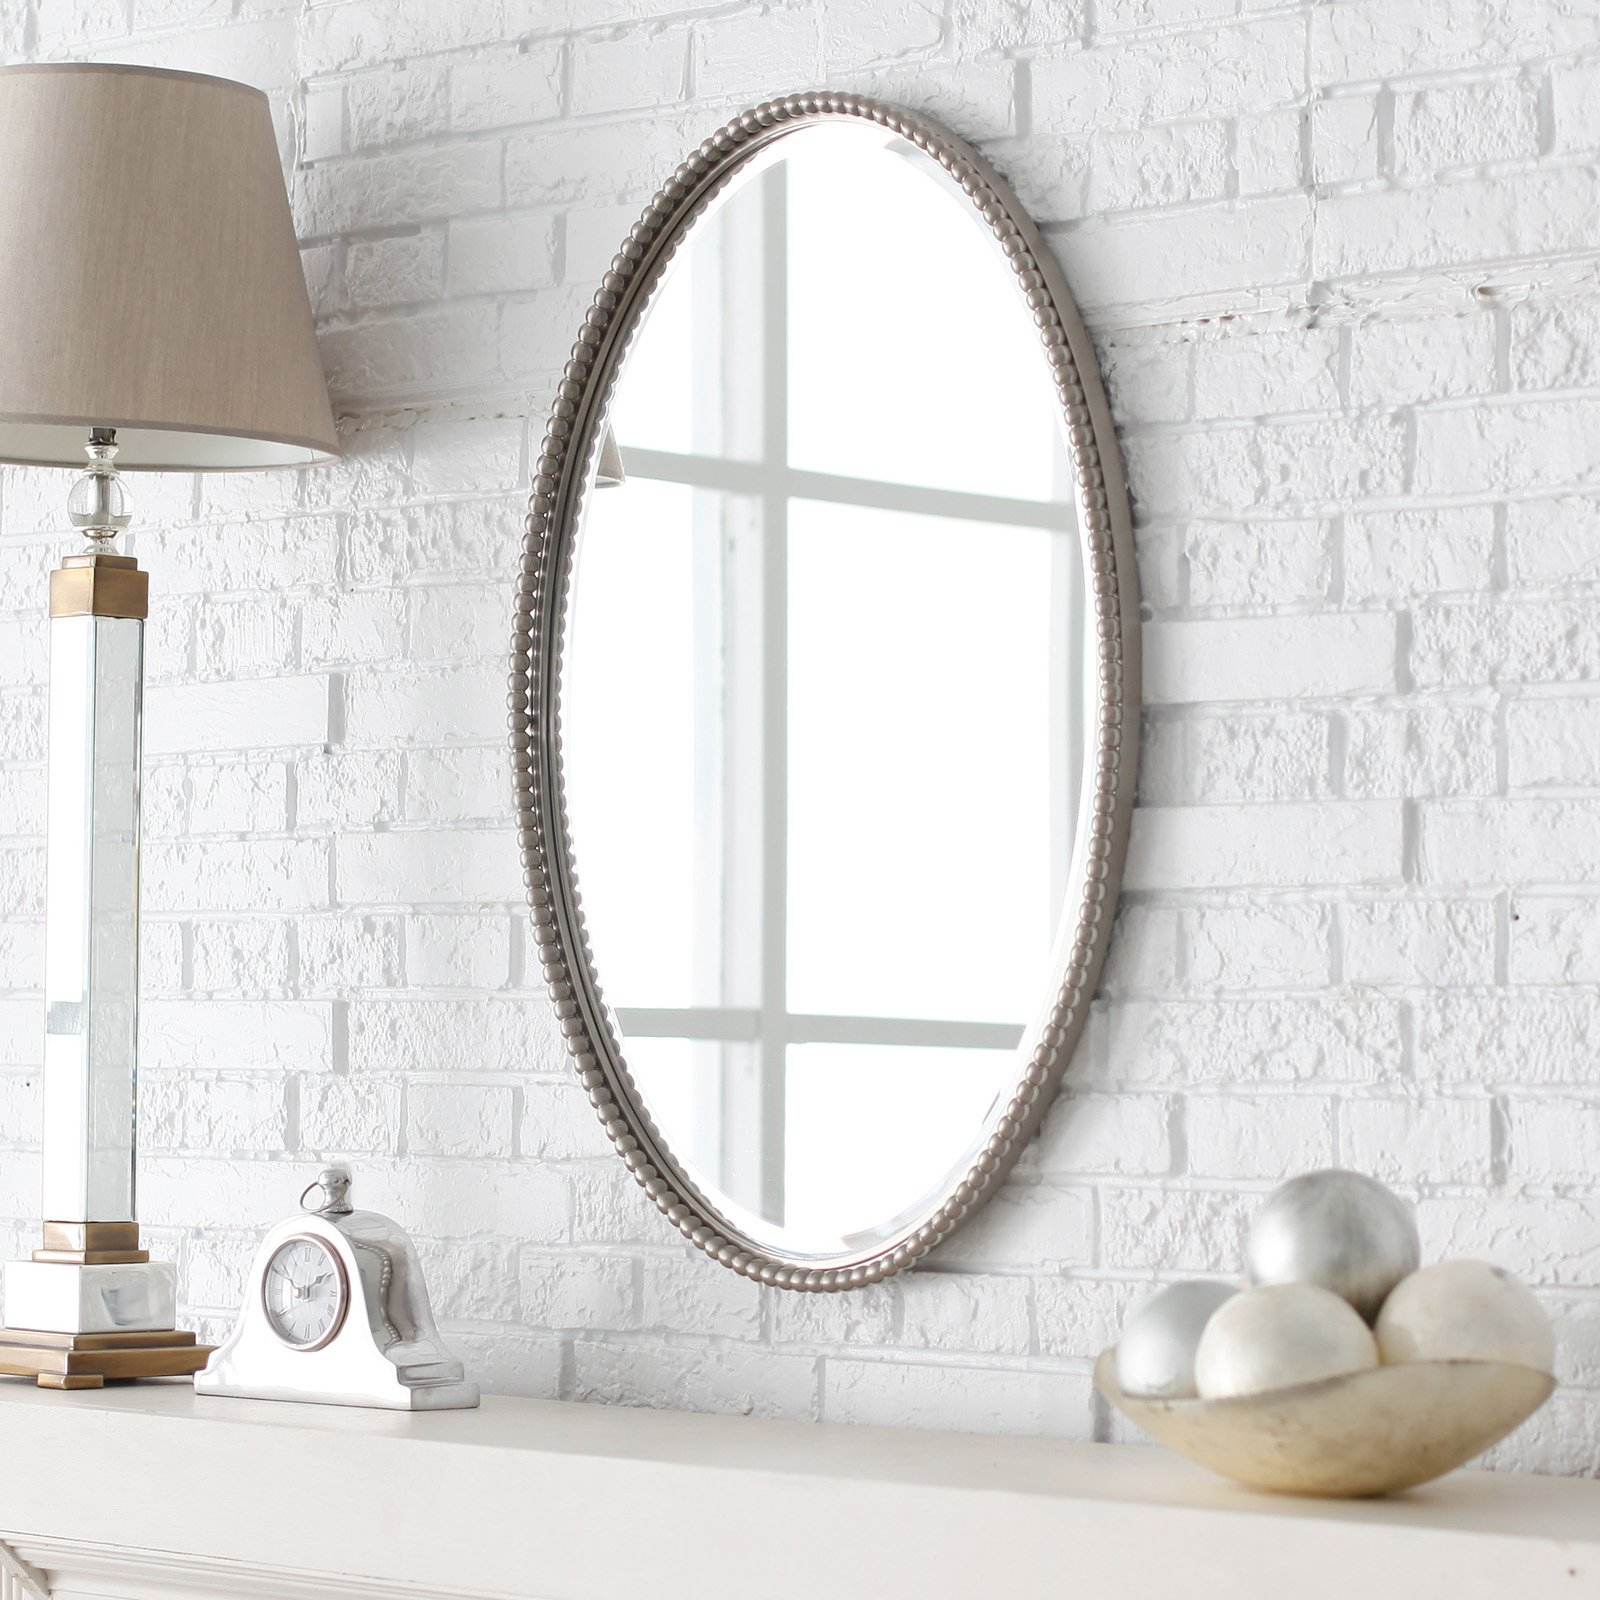 Small Oval Wall Mirrors With Regard To Recent Delightful Small Oval Beveled Mirror Shaving Ideas Depot Frame (View 19 of 20)